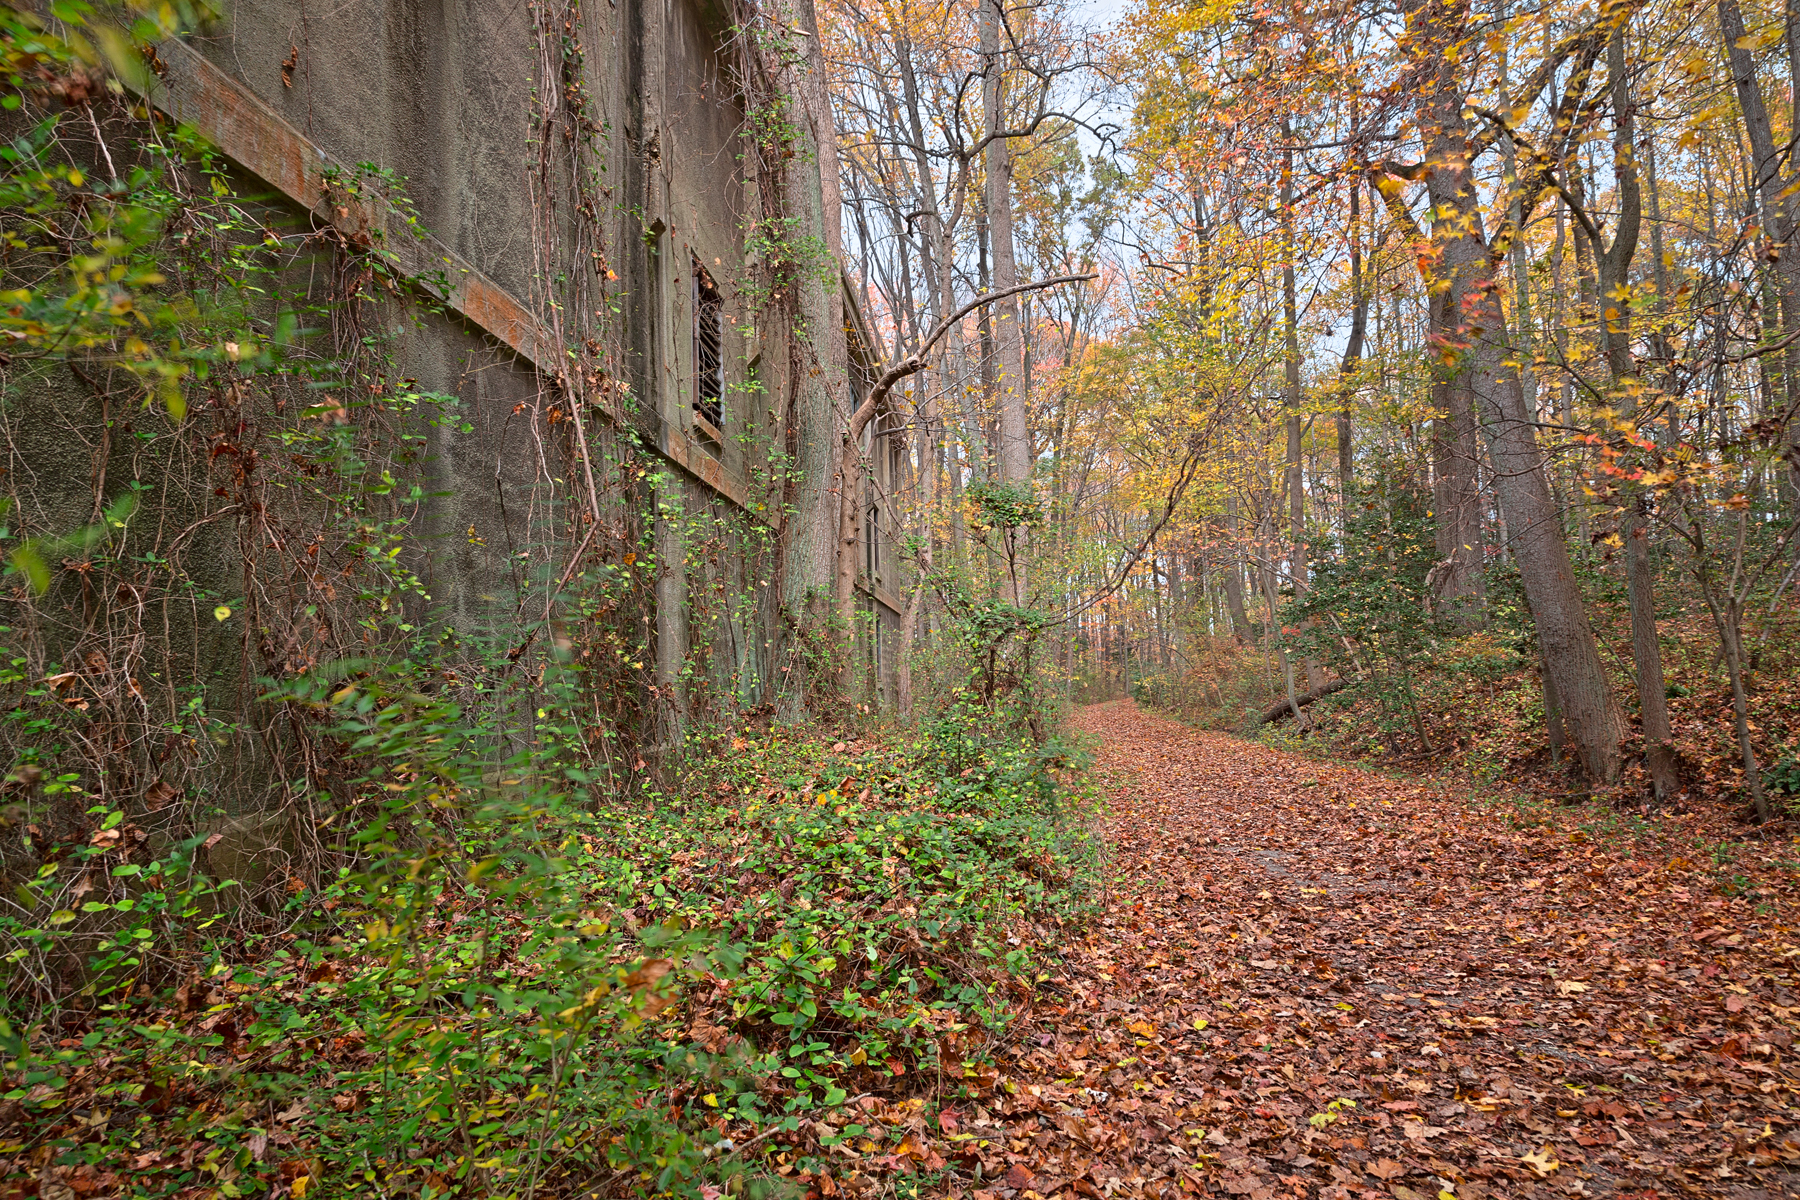 Fall Power House Trail - HDR, Abandoned, Recreation, Shade, Serenity, HQ Photo